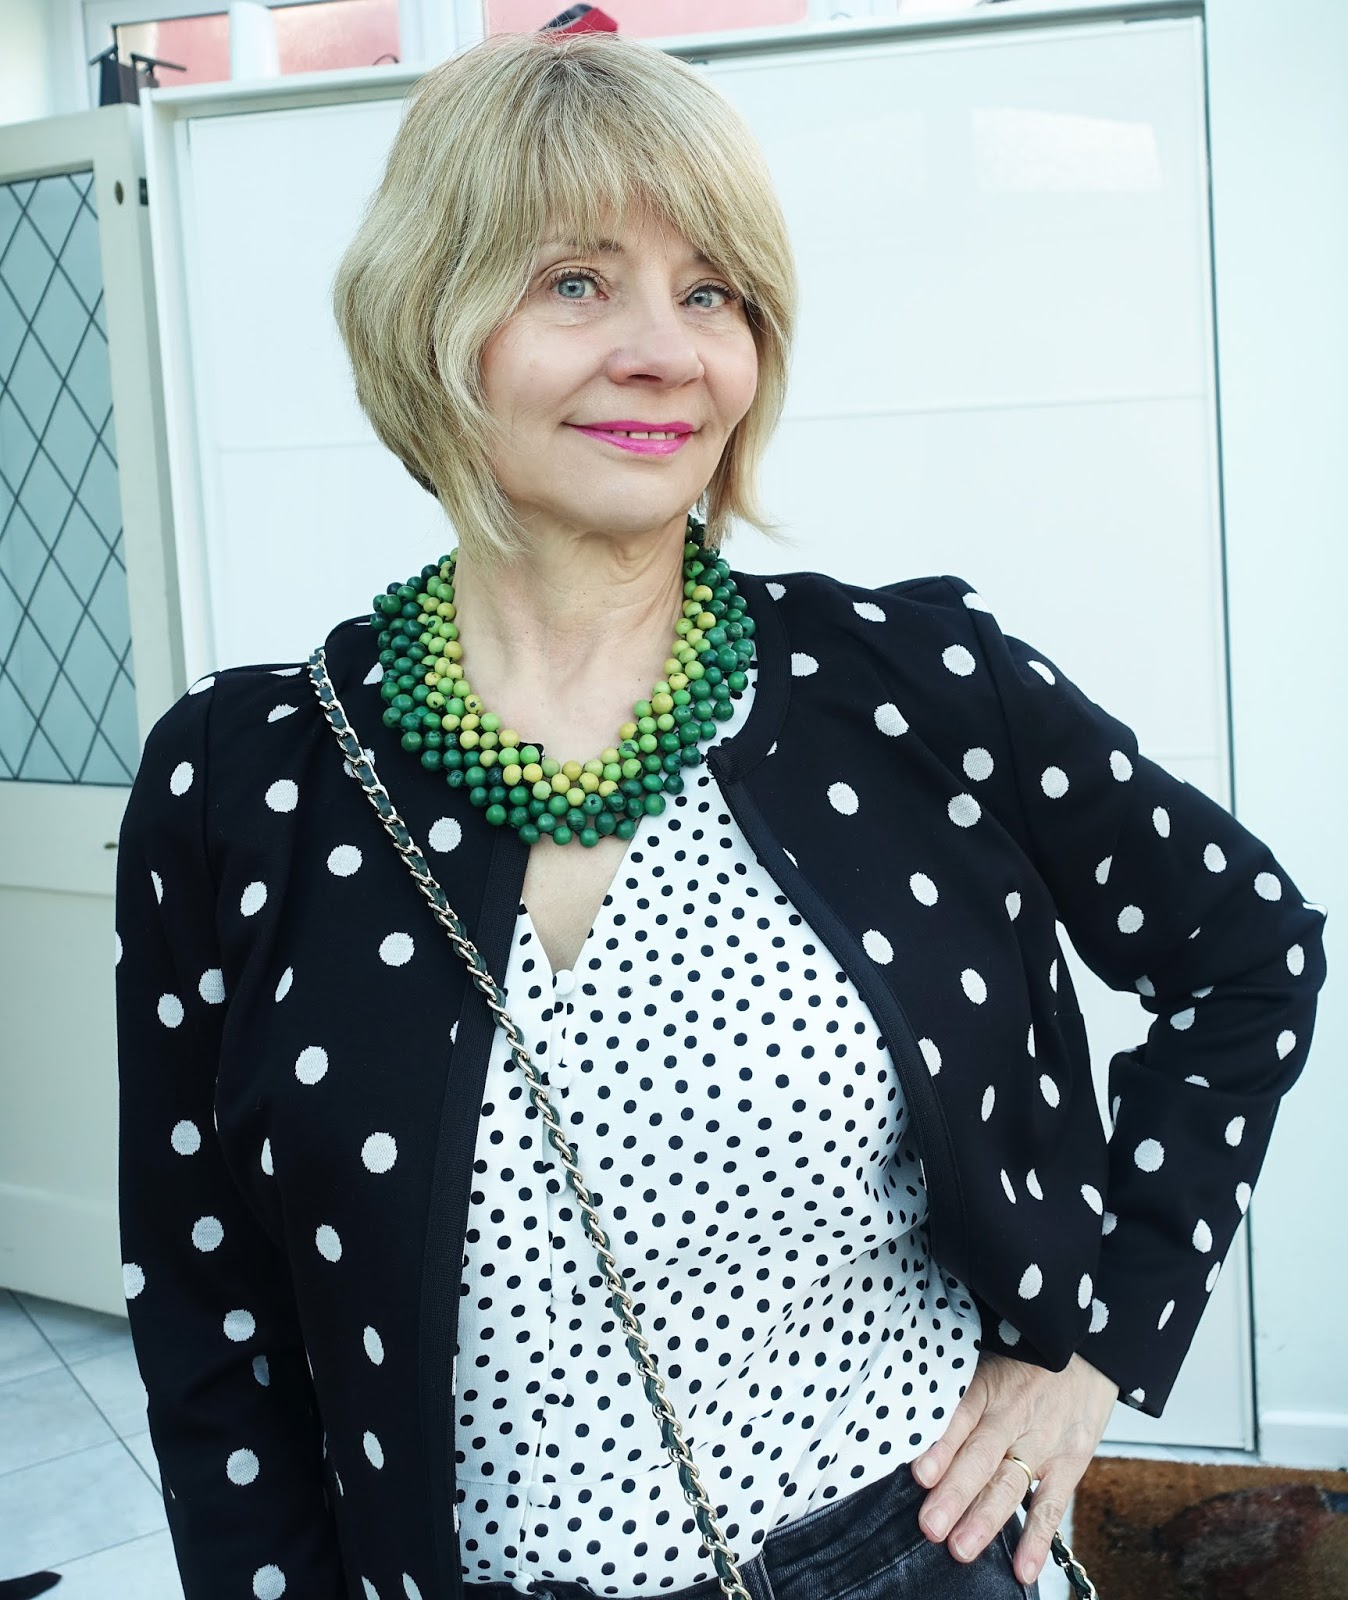 Monochrome with polka dots and a splash of green from over-50s style blogger Gail Hanlon